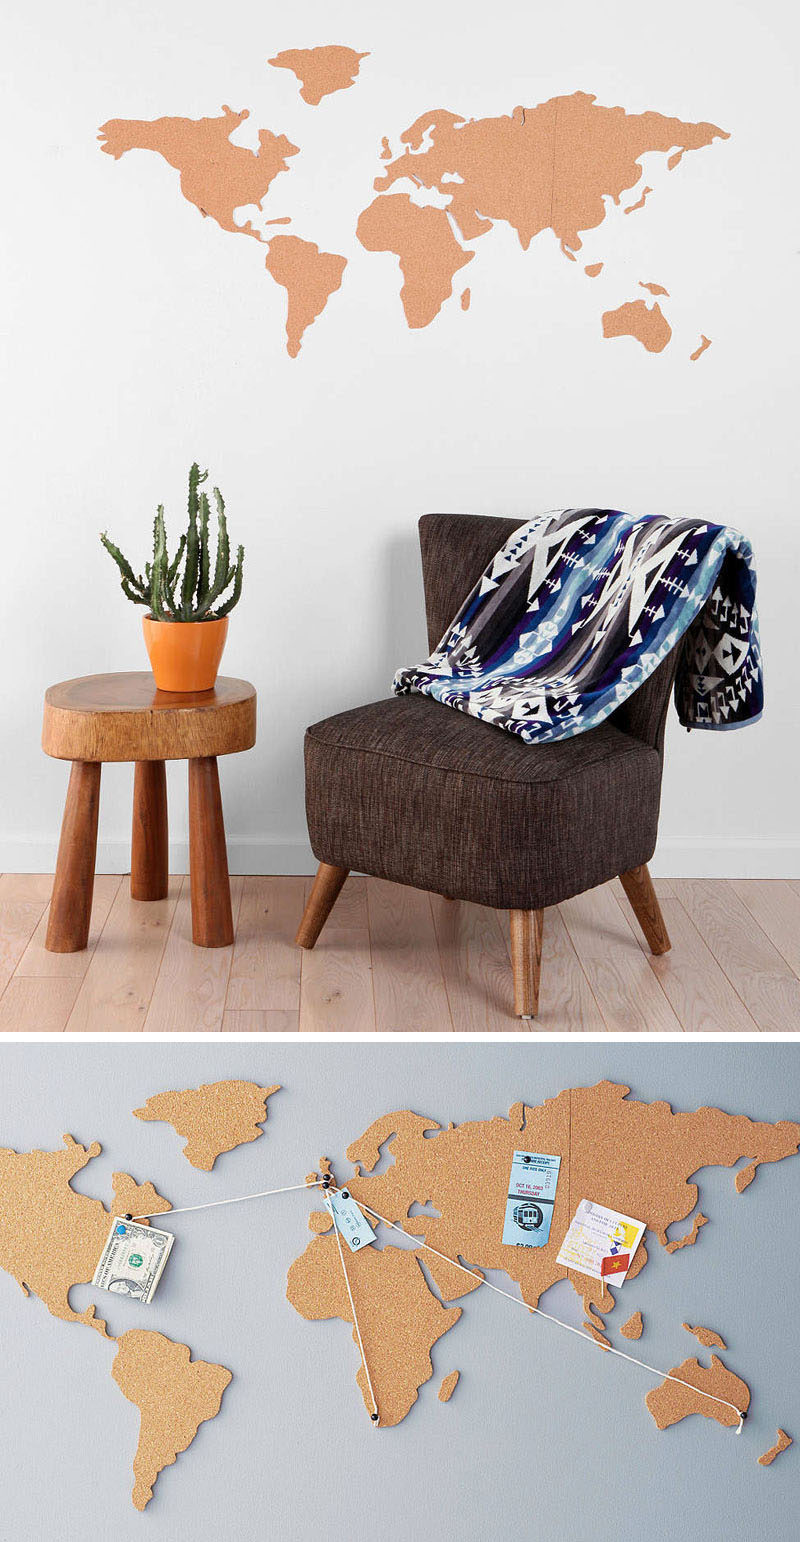 10 world map designs to decorate a plain wall contemporist keep track of your travels with a cork board map use pins and string to map your trips and stick little photos or keepsakes directly onto the map to create gumiabroncs Images